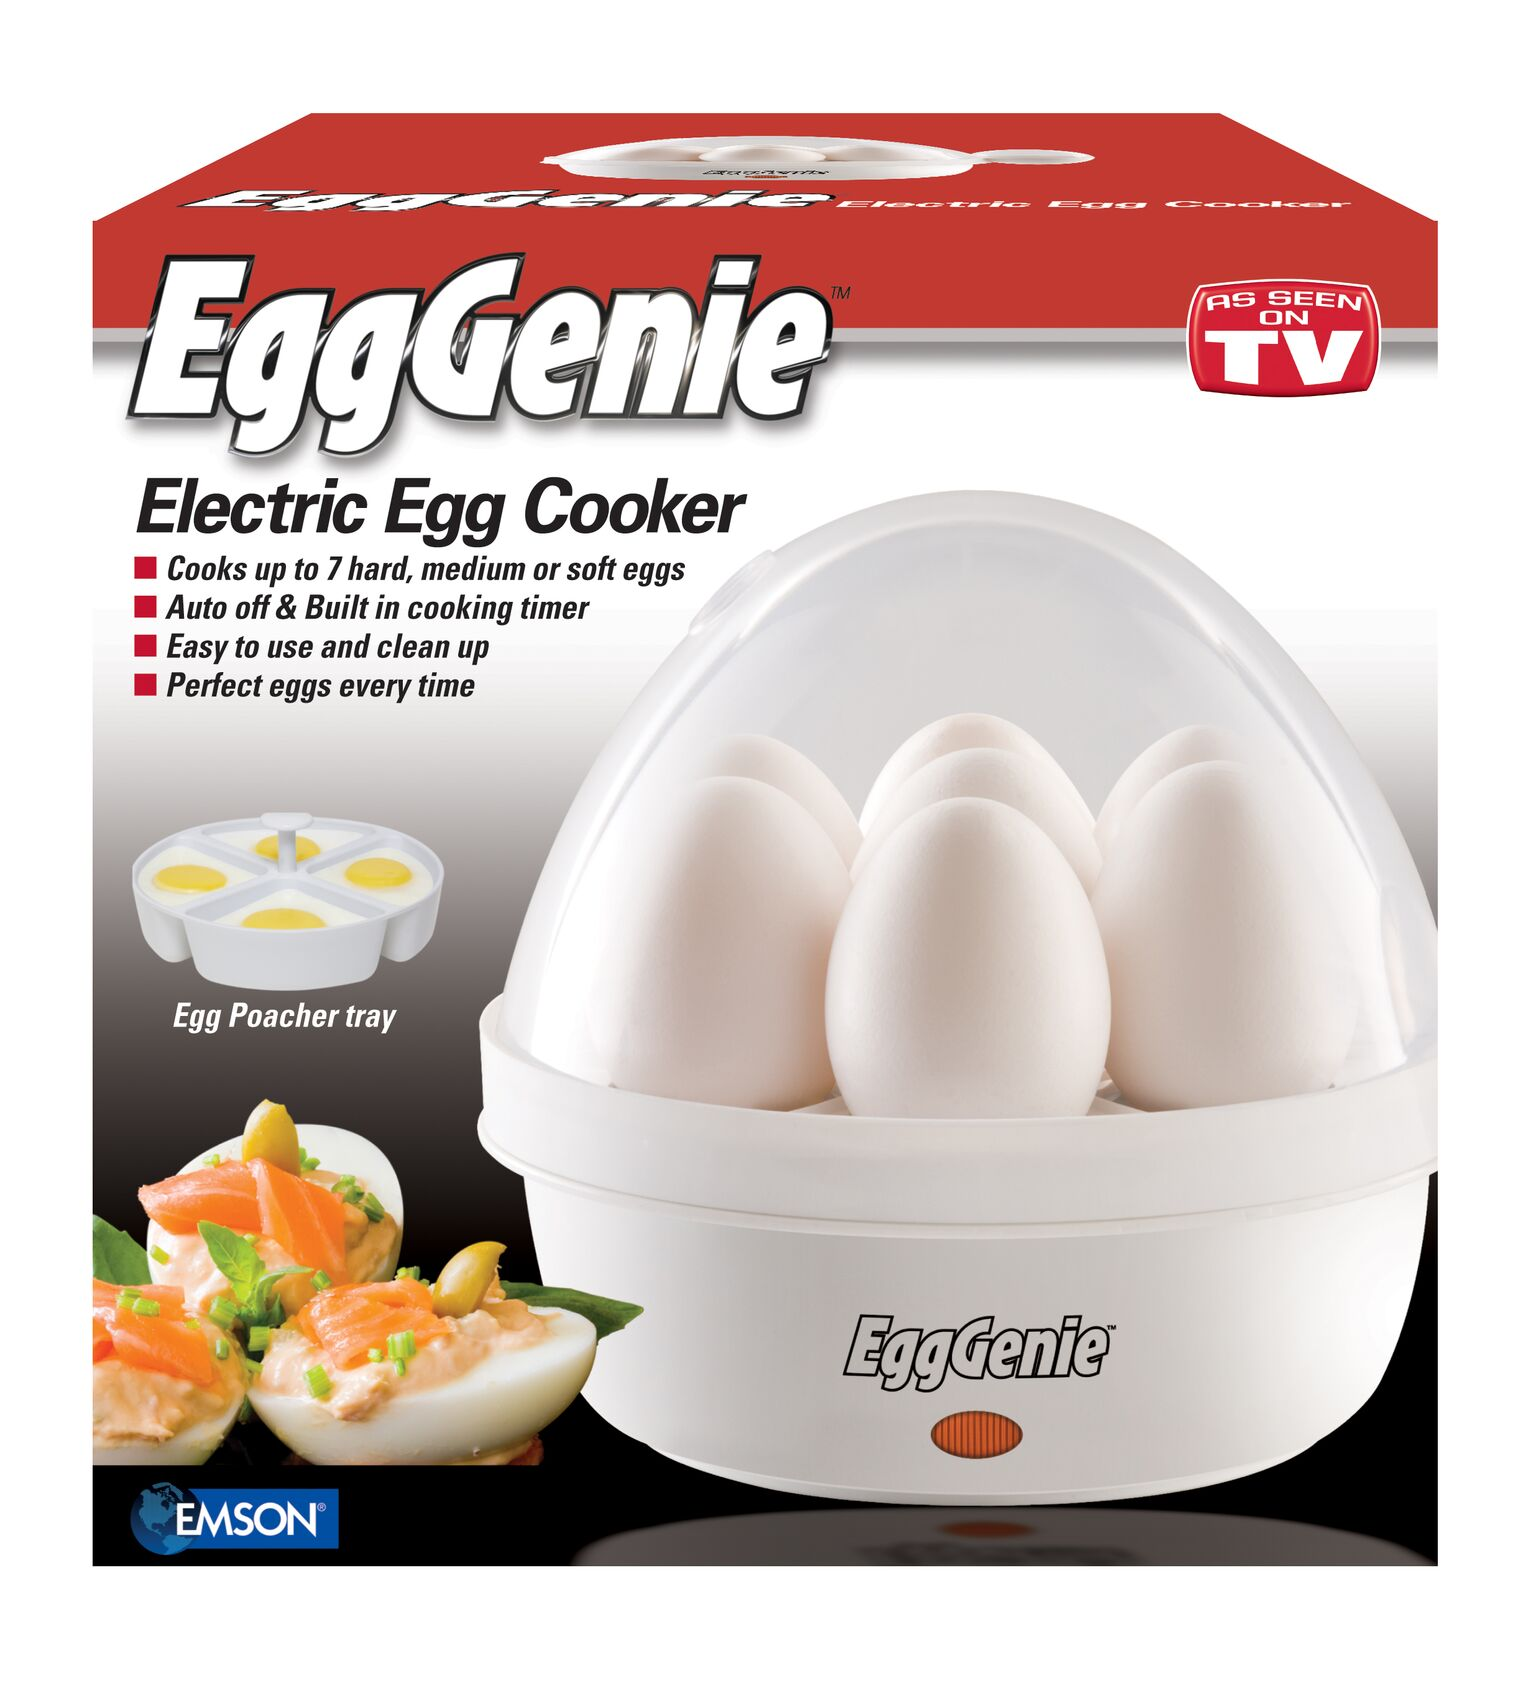 Egg Genie by Big Boss, The Original Rapid Egg Cooker - As Seen on TV